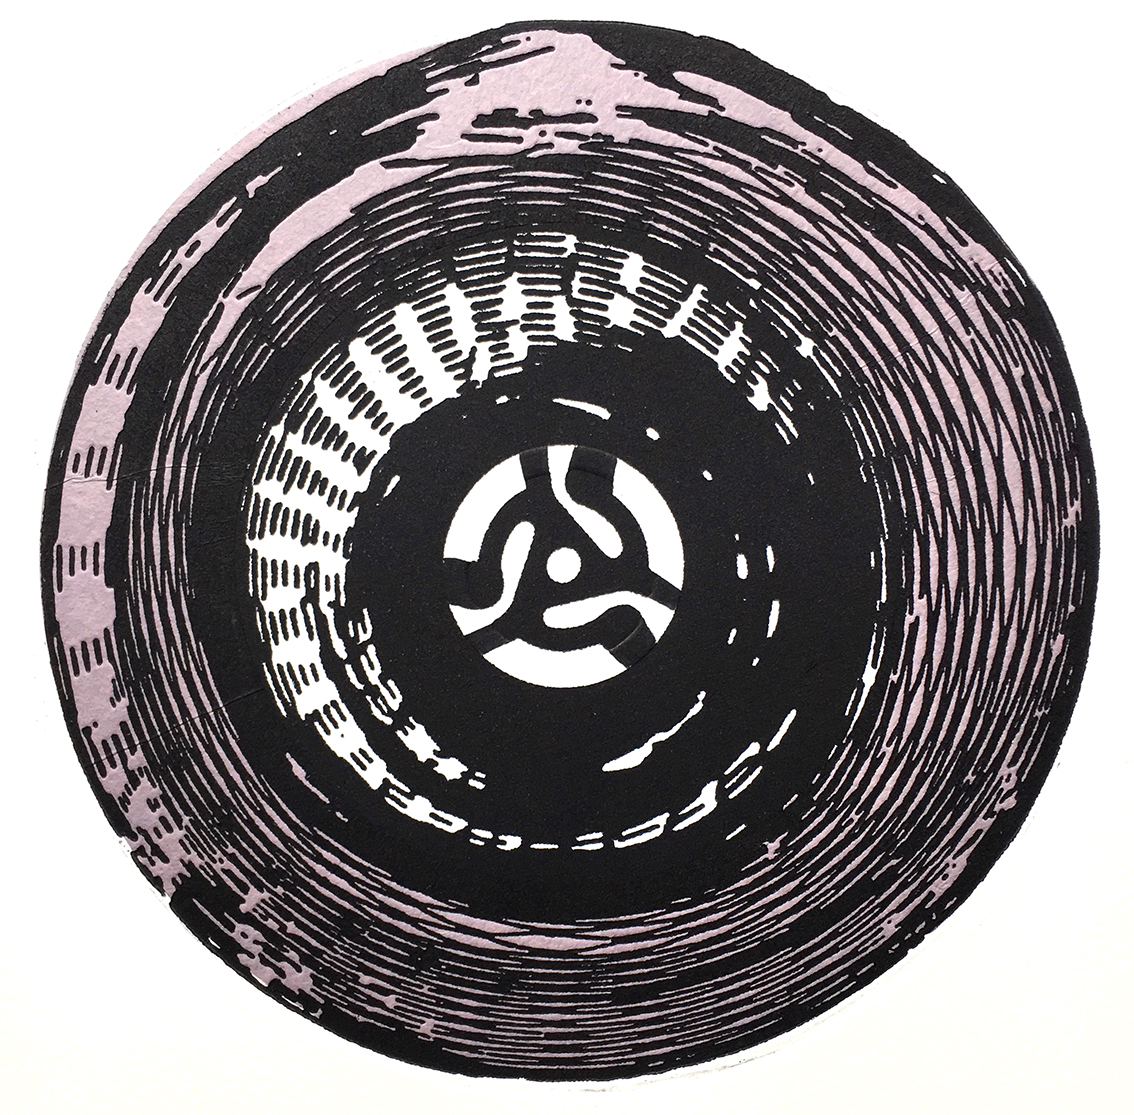 Kirigami vinyl, Photopolymer etching and chine collé